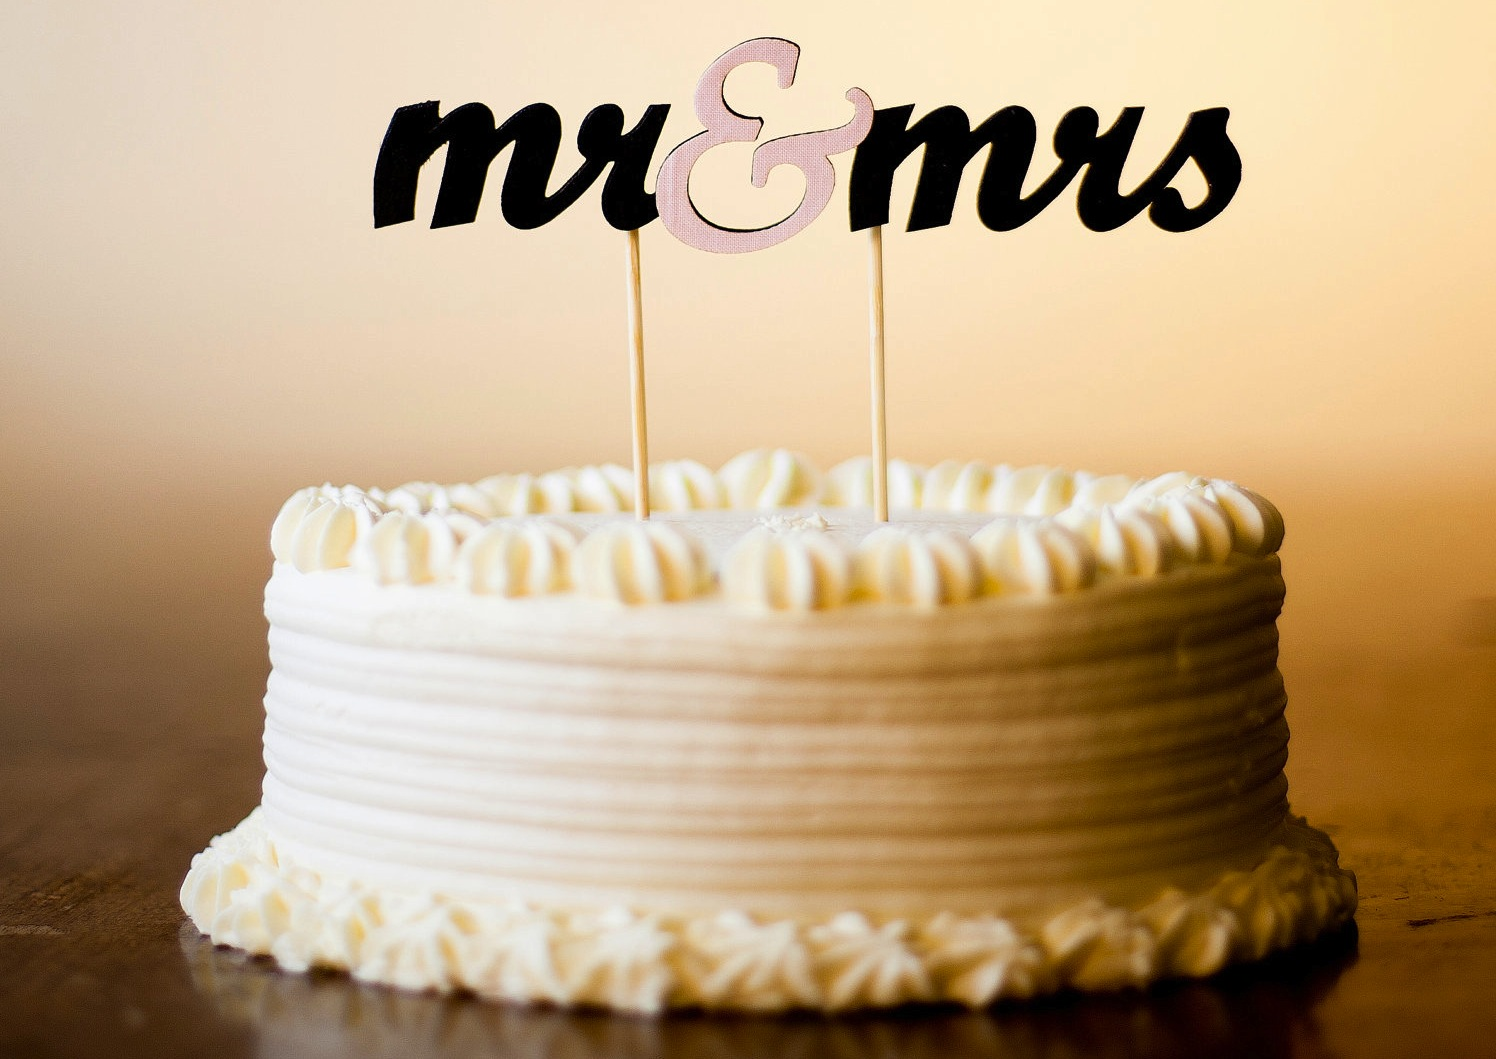 creative wedding ideas from Etsy Mr and Mrs decor cake ...